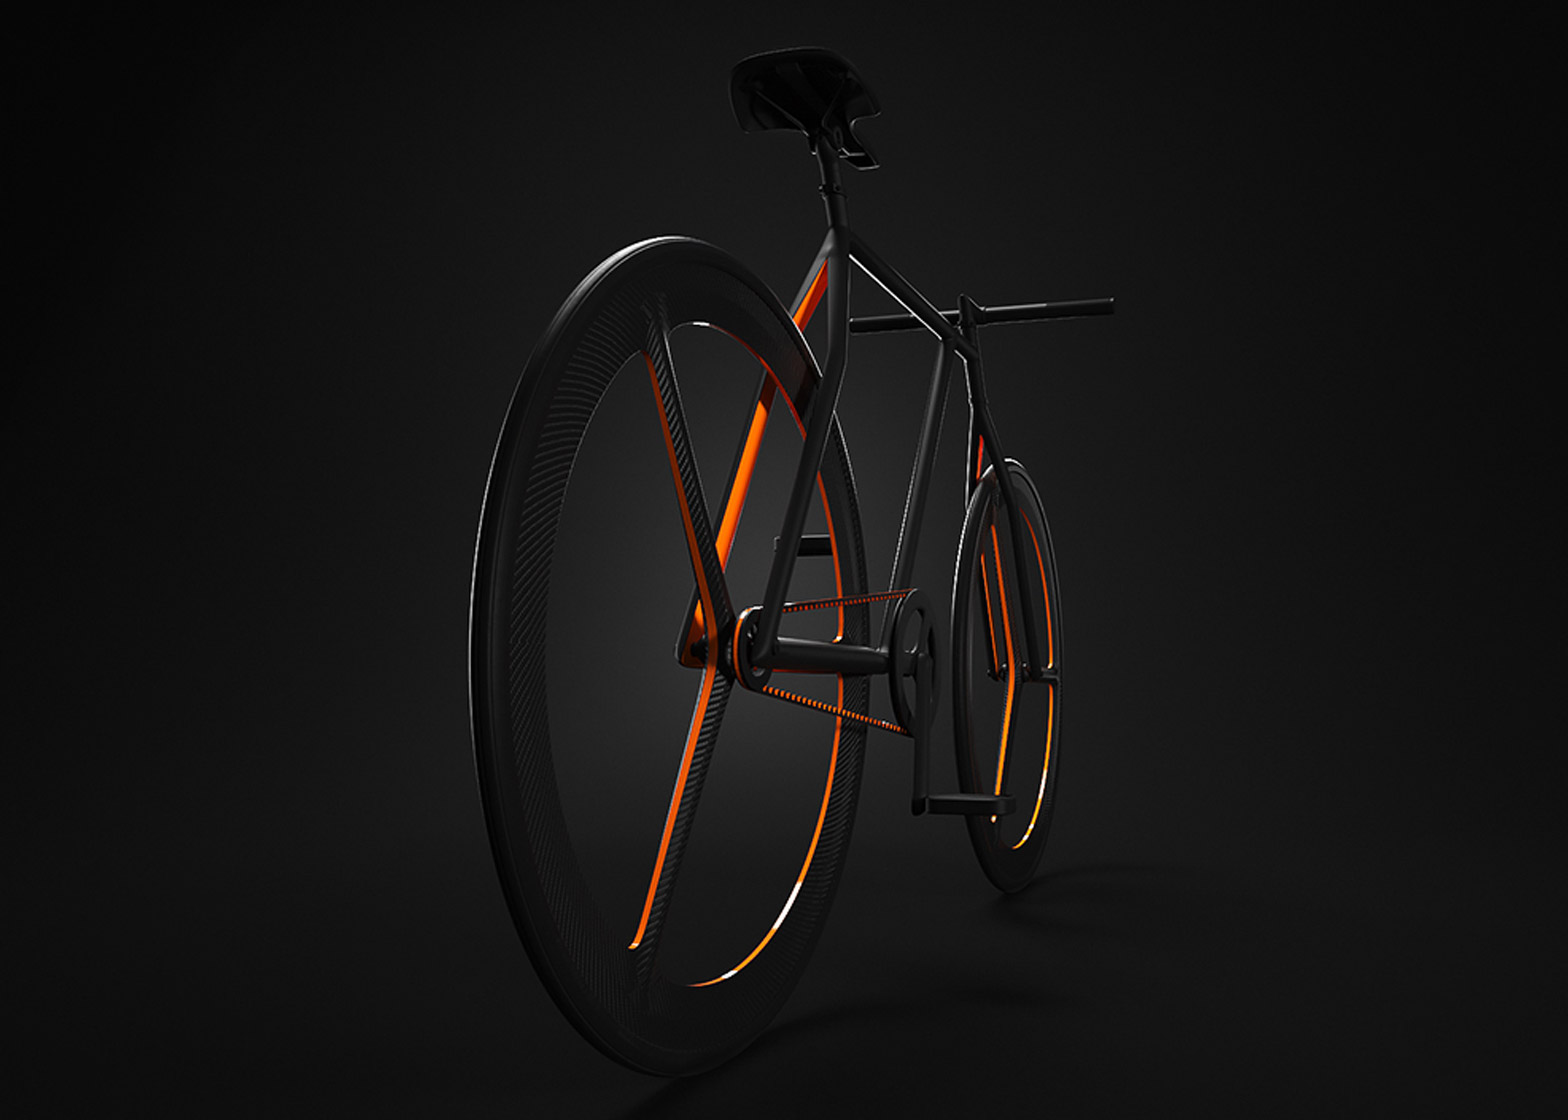 """Ion Lucin's Baik bicycle has vivid orange accents and """"as few lines as possible"""""""